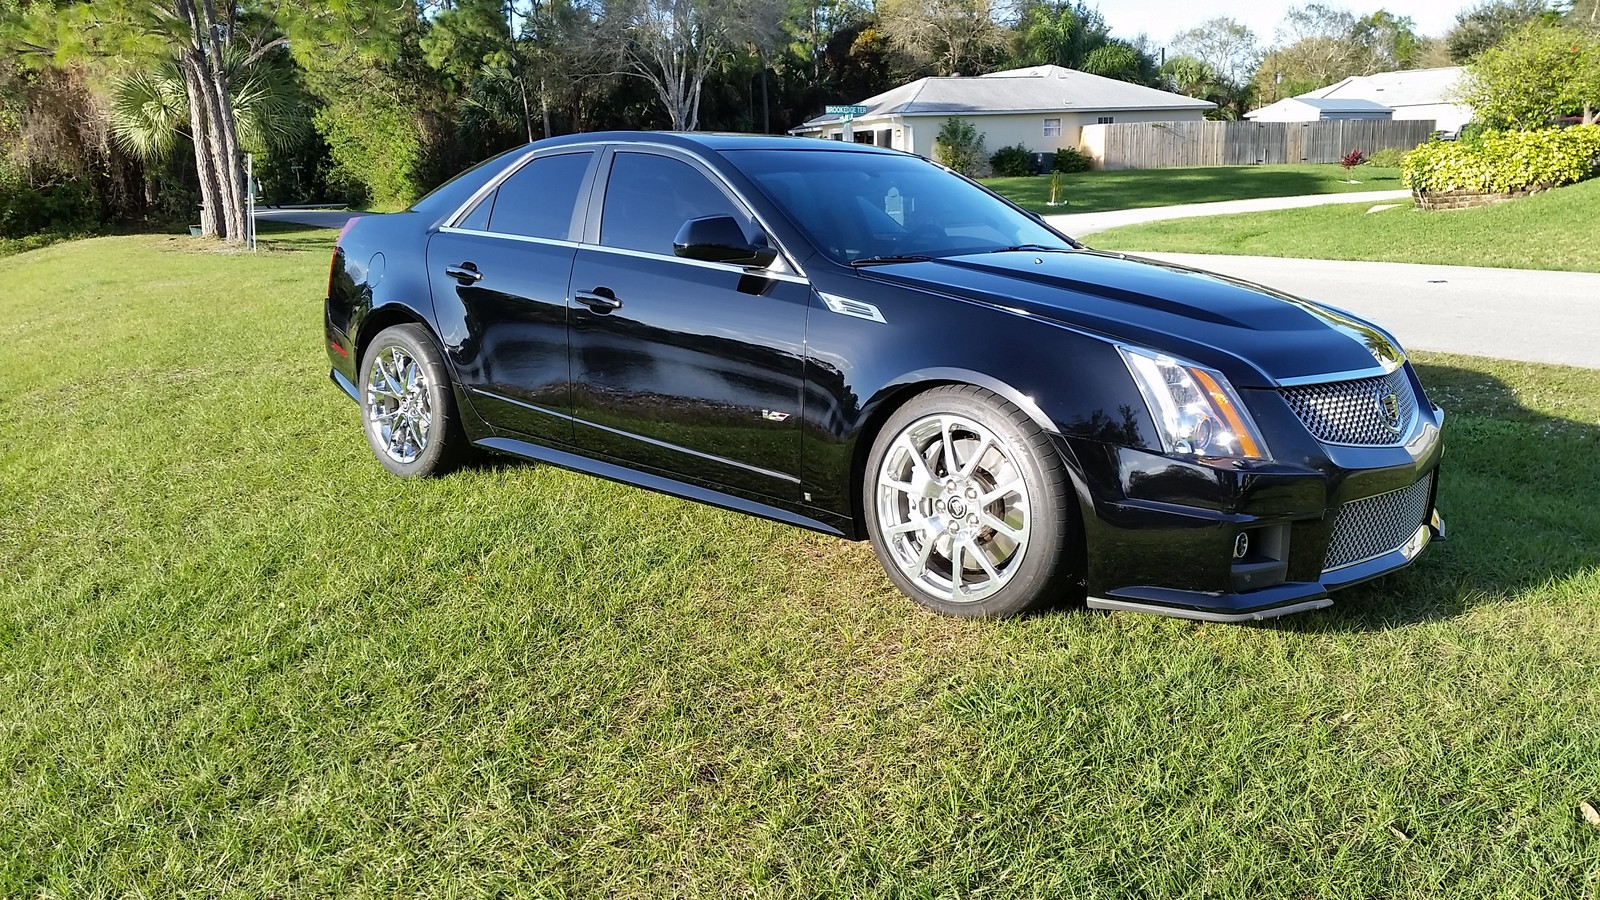 2009 cadillac cts v sedan 1 4 mile drag racing timeslip. Black Bedroom Furniture Sets. Home Design Ideas